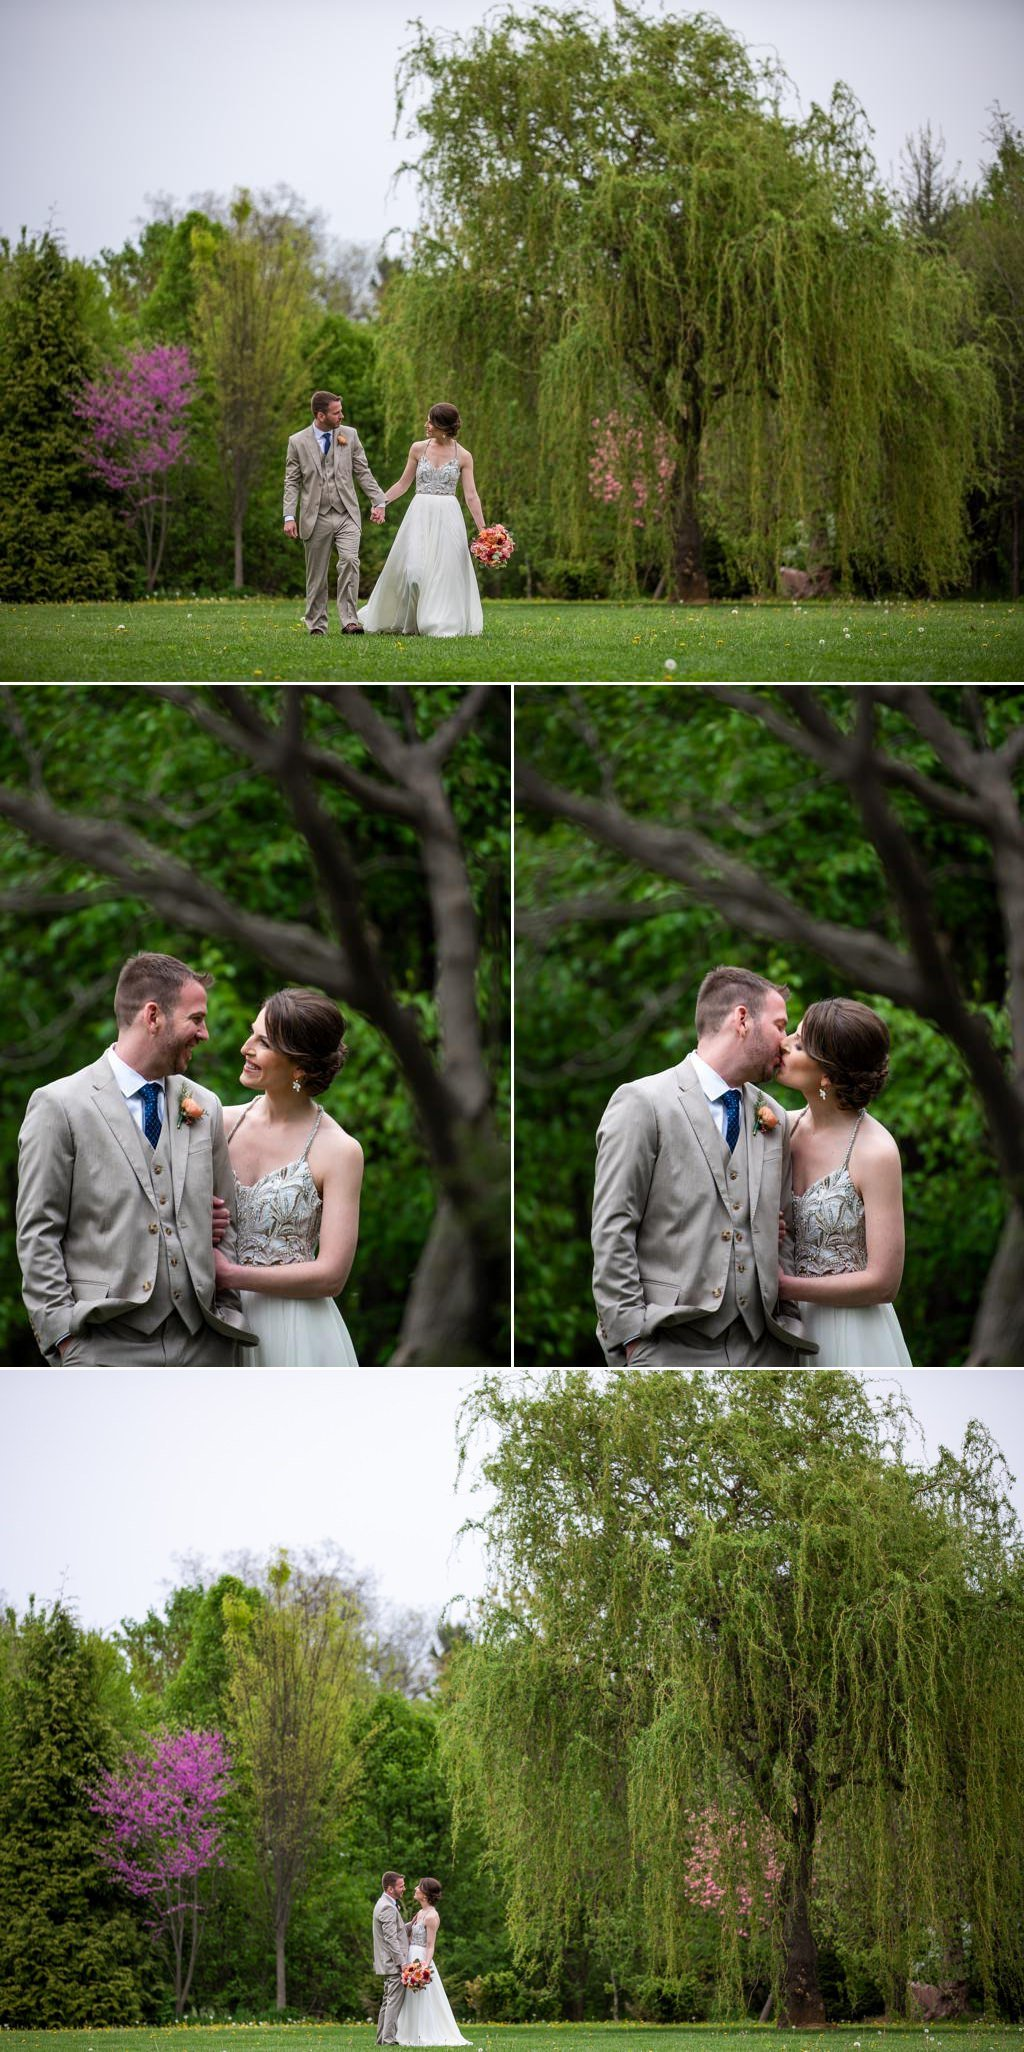 A bride and groom posing for photos near a willow tree at The Barn at Silverstone